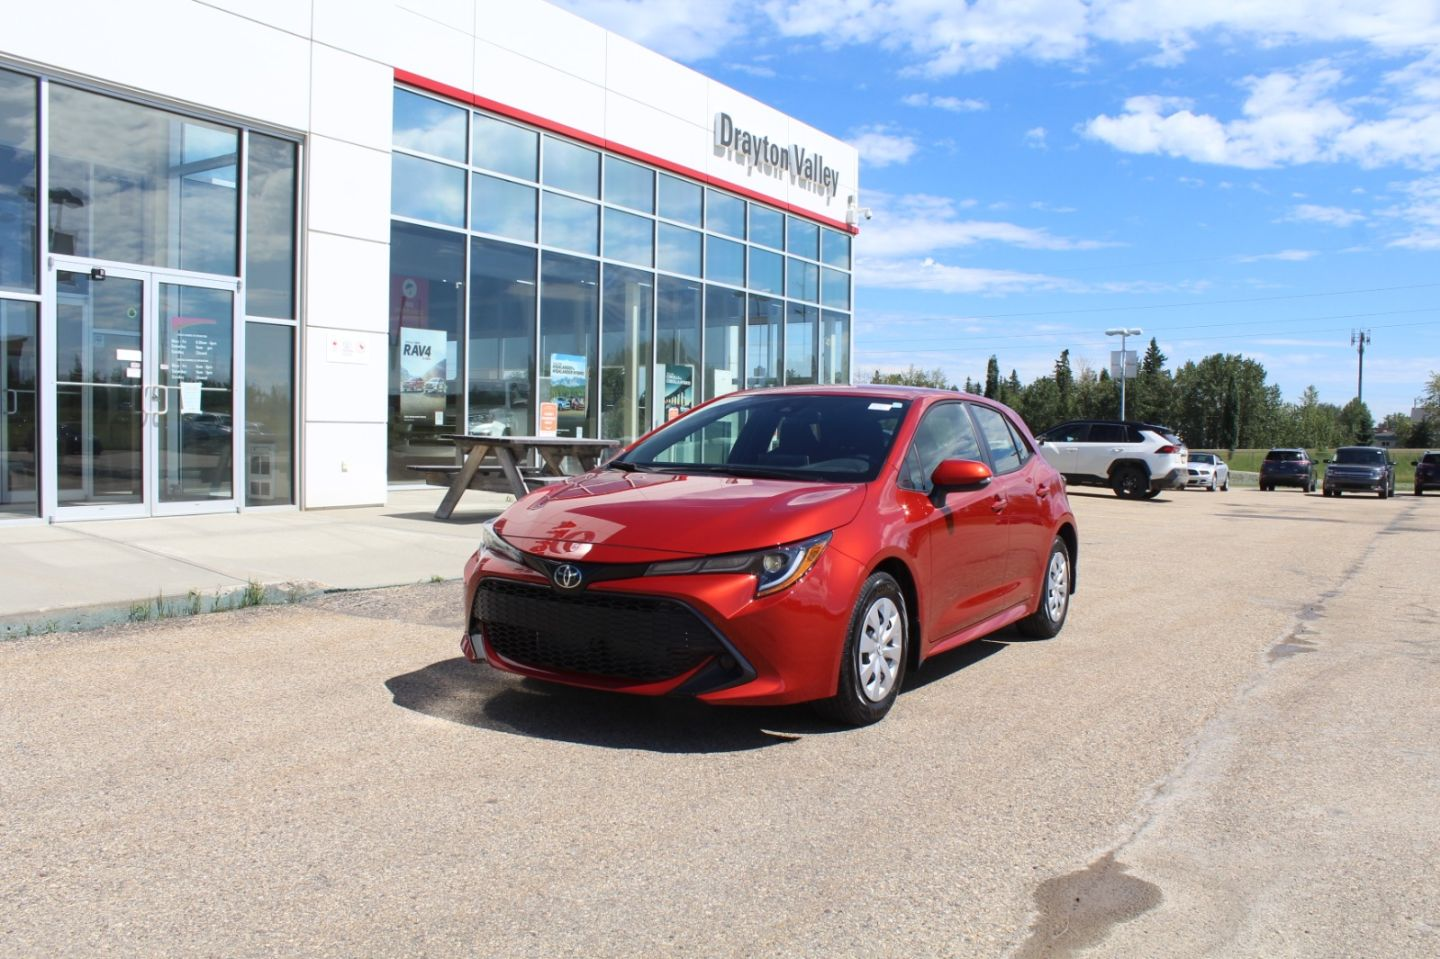 2020 Toyota Corolla Hatchback  for sale in Drayton Valley, Alberta